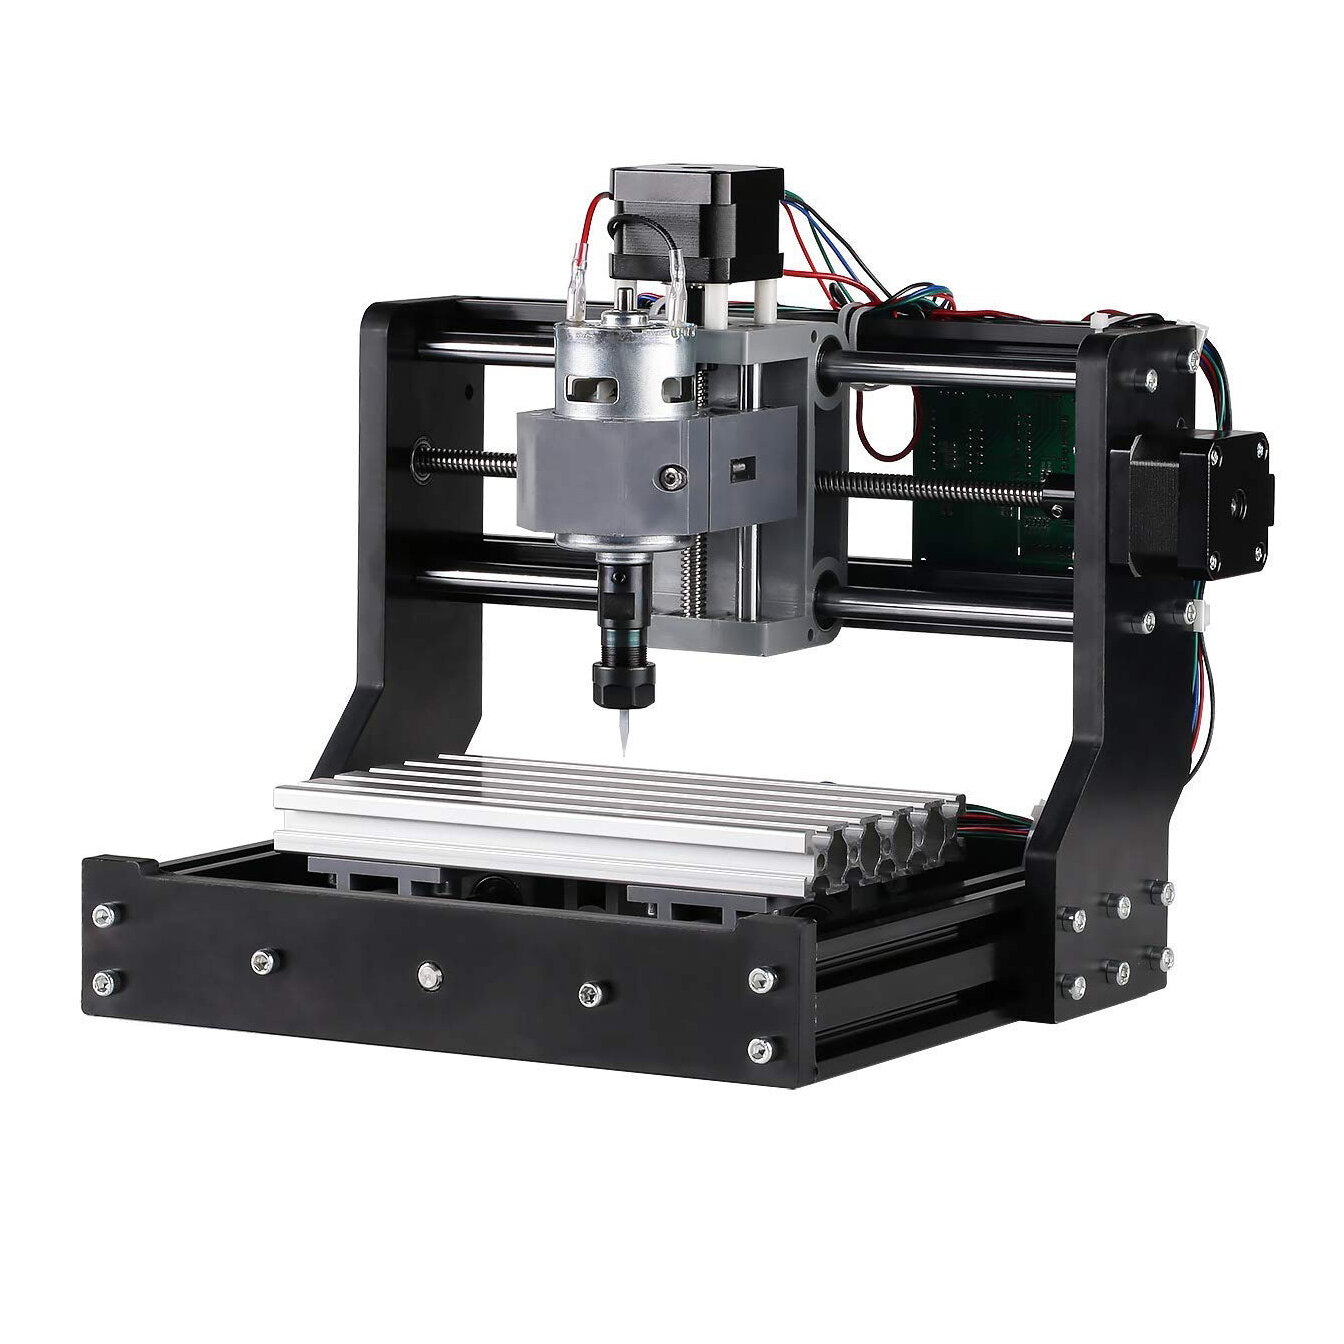 Upgrade Version 1810 GRBL Control Mini DIY CNC Router Standard Spindle Motor Wood Laser Engraving Machine Spindle Motor PCB PVC Milling Engraver Wood Router Engraver